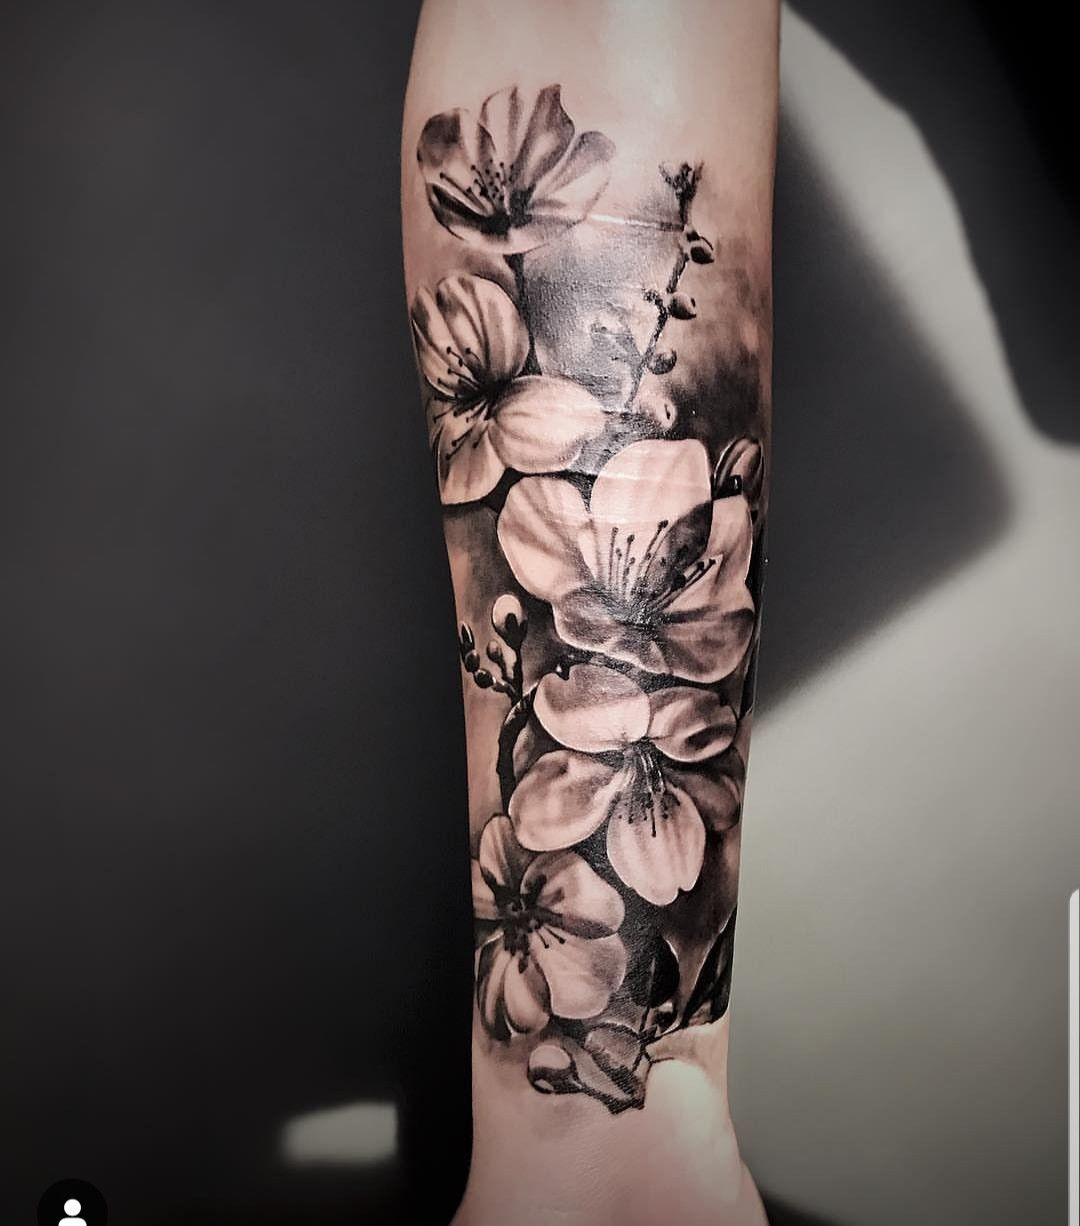 Pin by Chelsea Carter on Tat, tat, tatted up Anemone